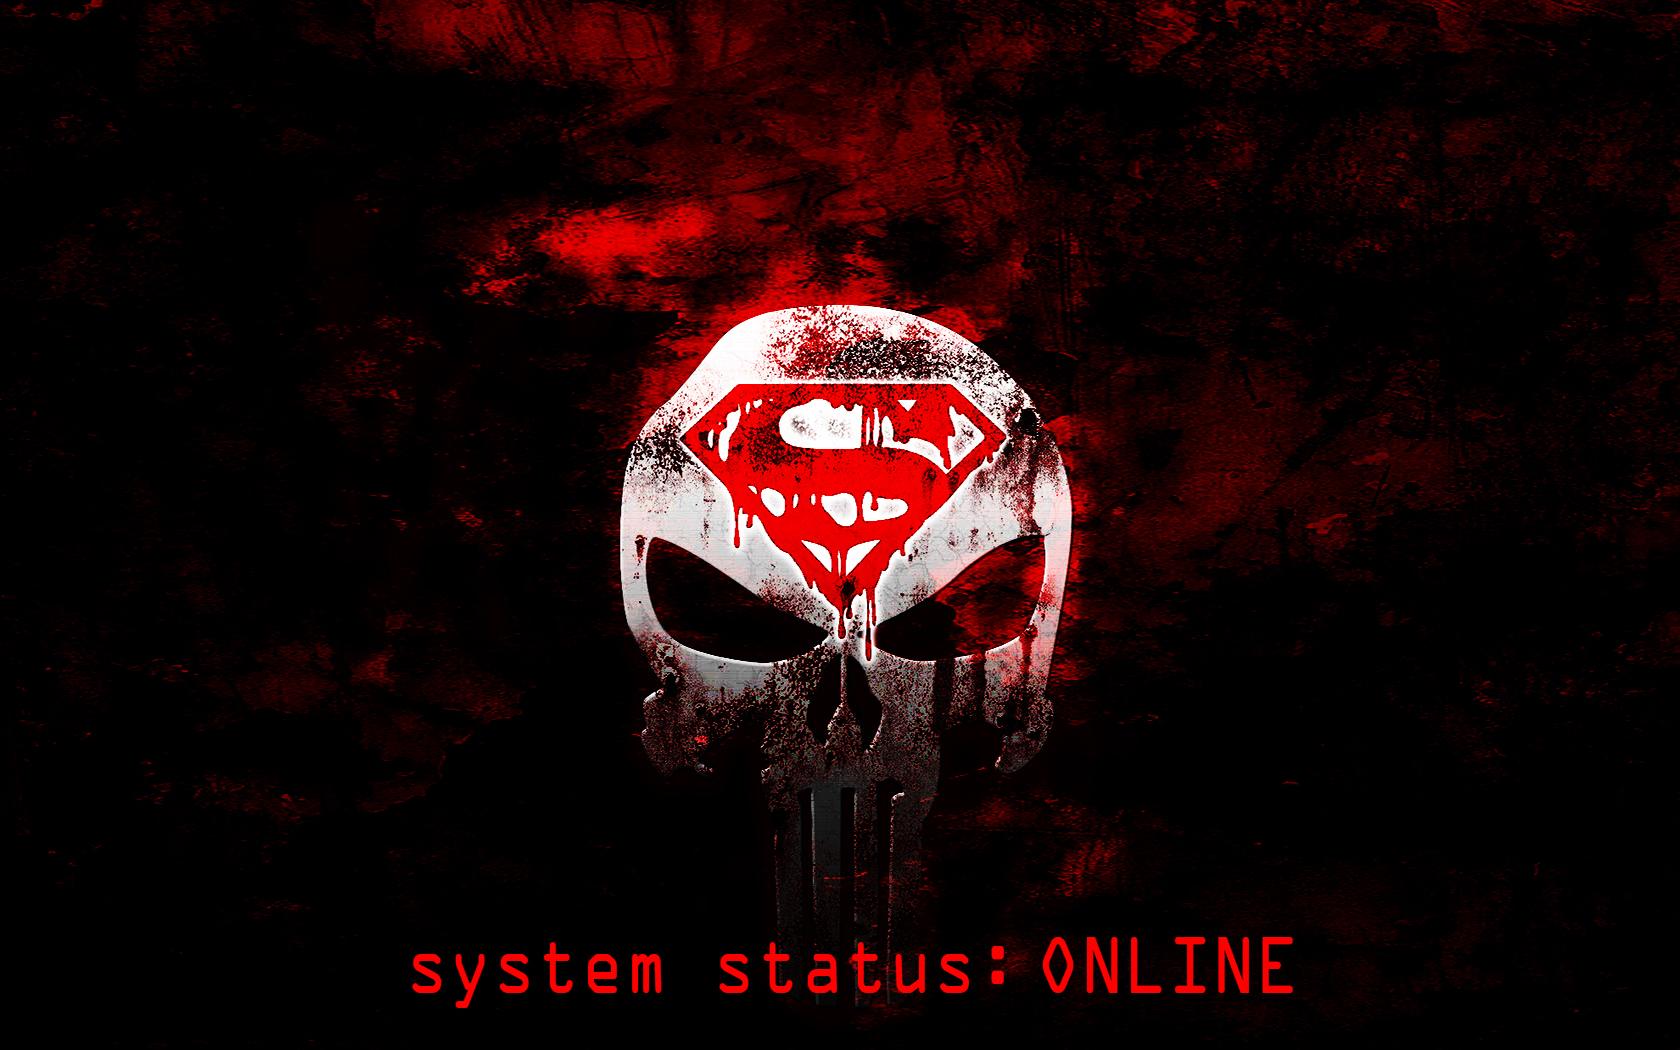 Superman/Punisher logo Wallpaper ONLINE by s1nwithm3 on ...